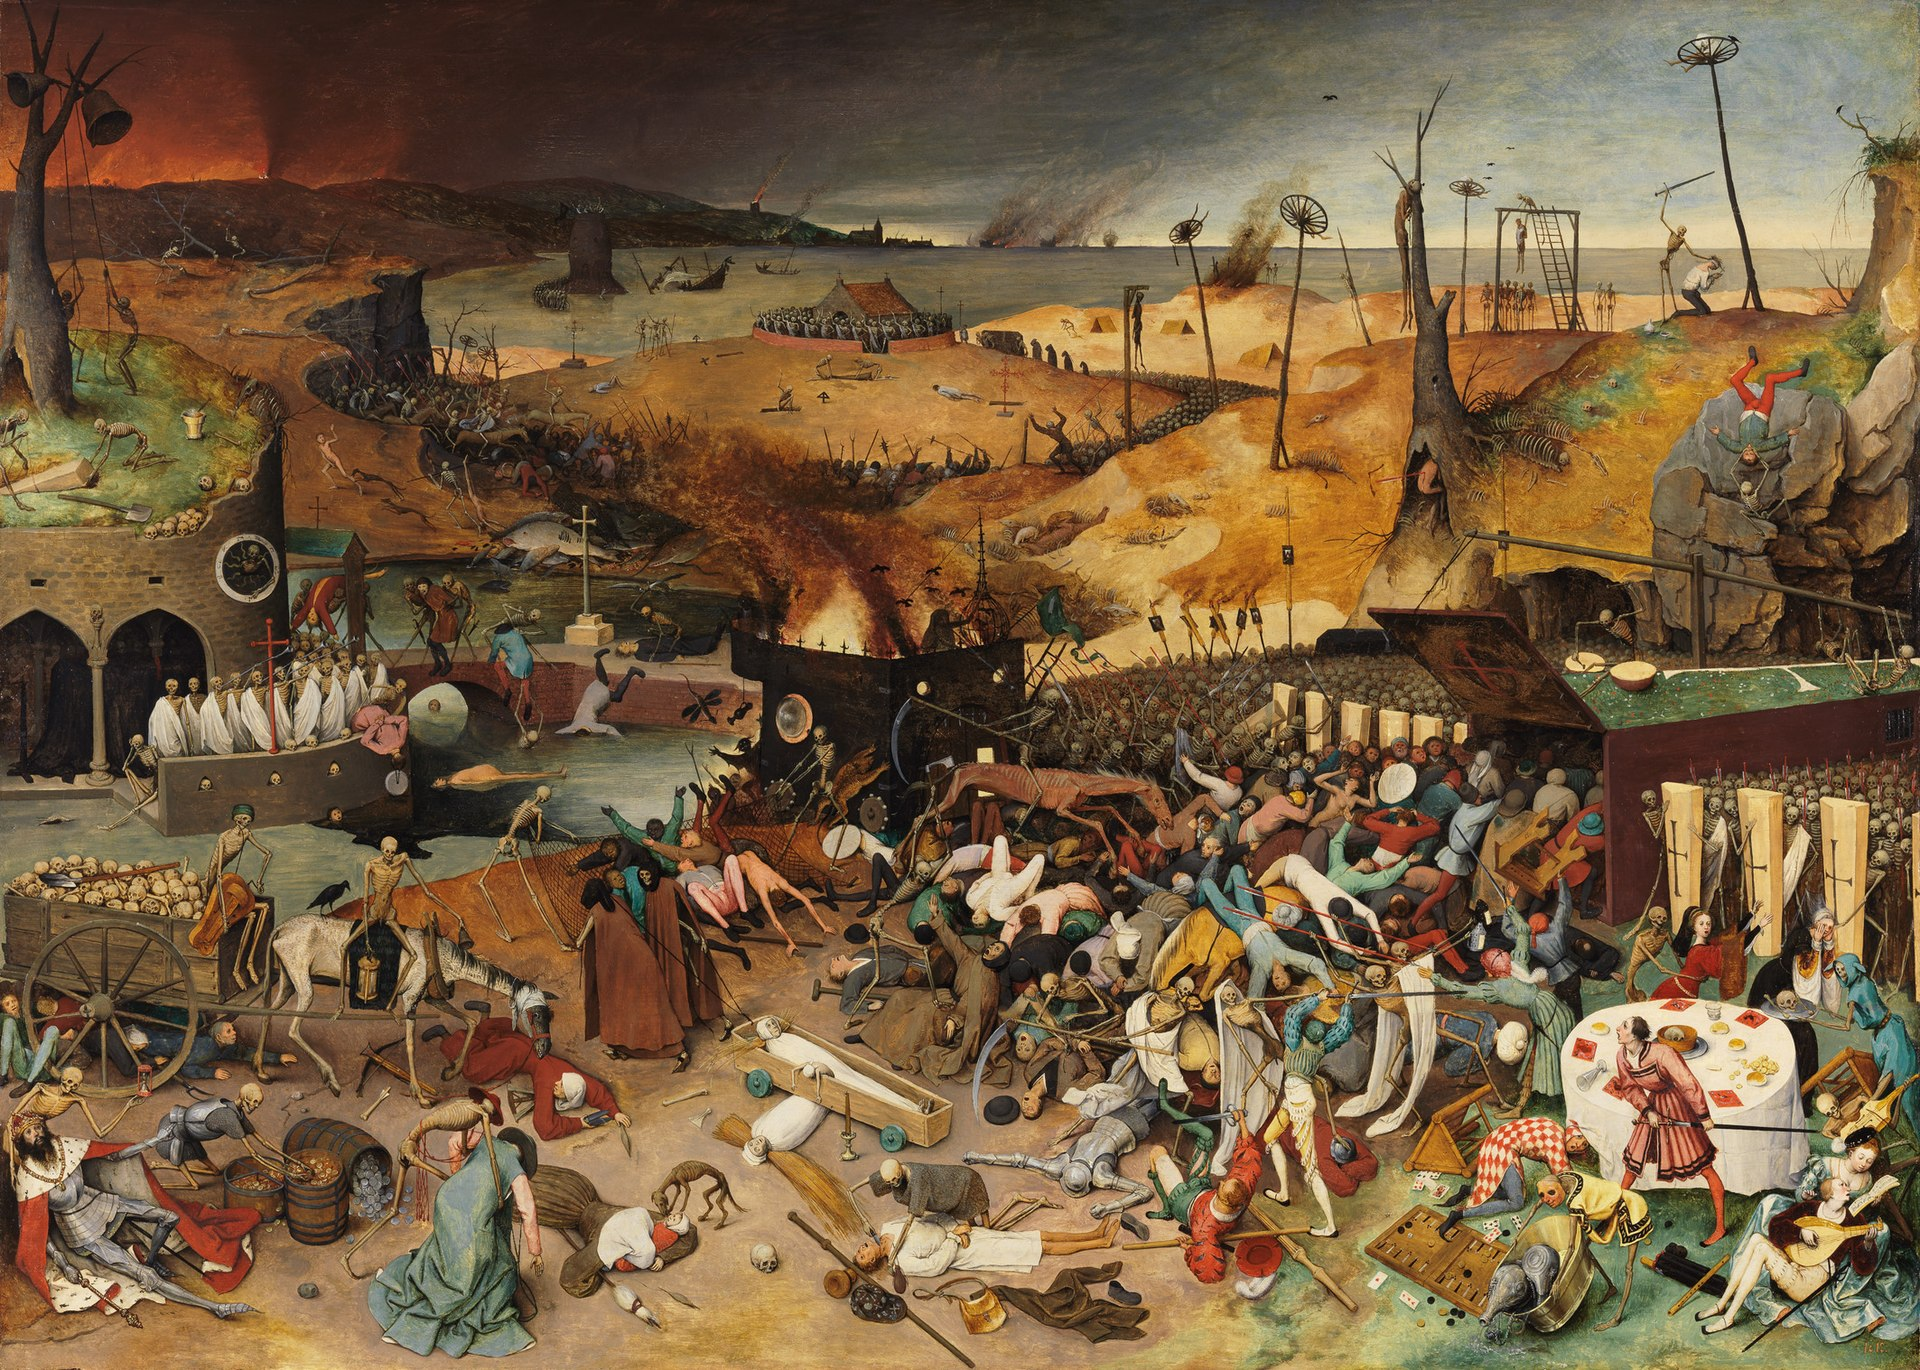 https://horasis.org/wp-content/uploads/1920px-The_Triumph_of_Death_by_Pieter_Bruegel_the_Elder.jpg